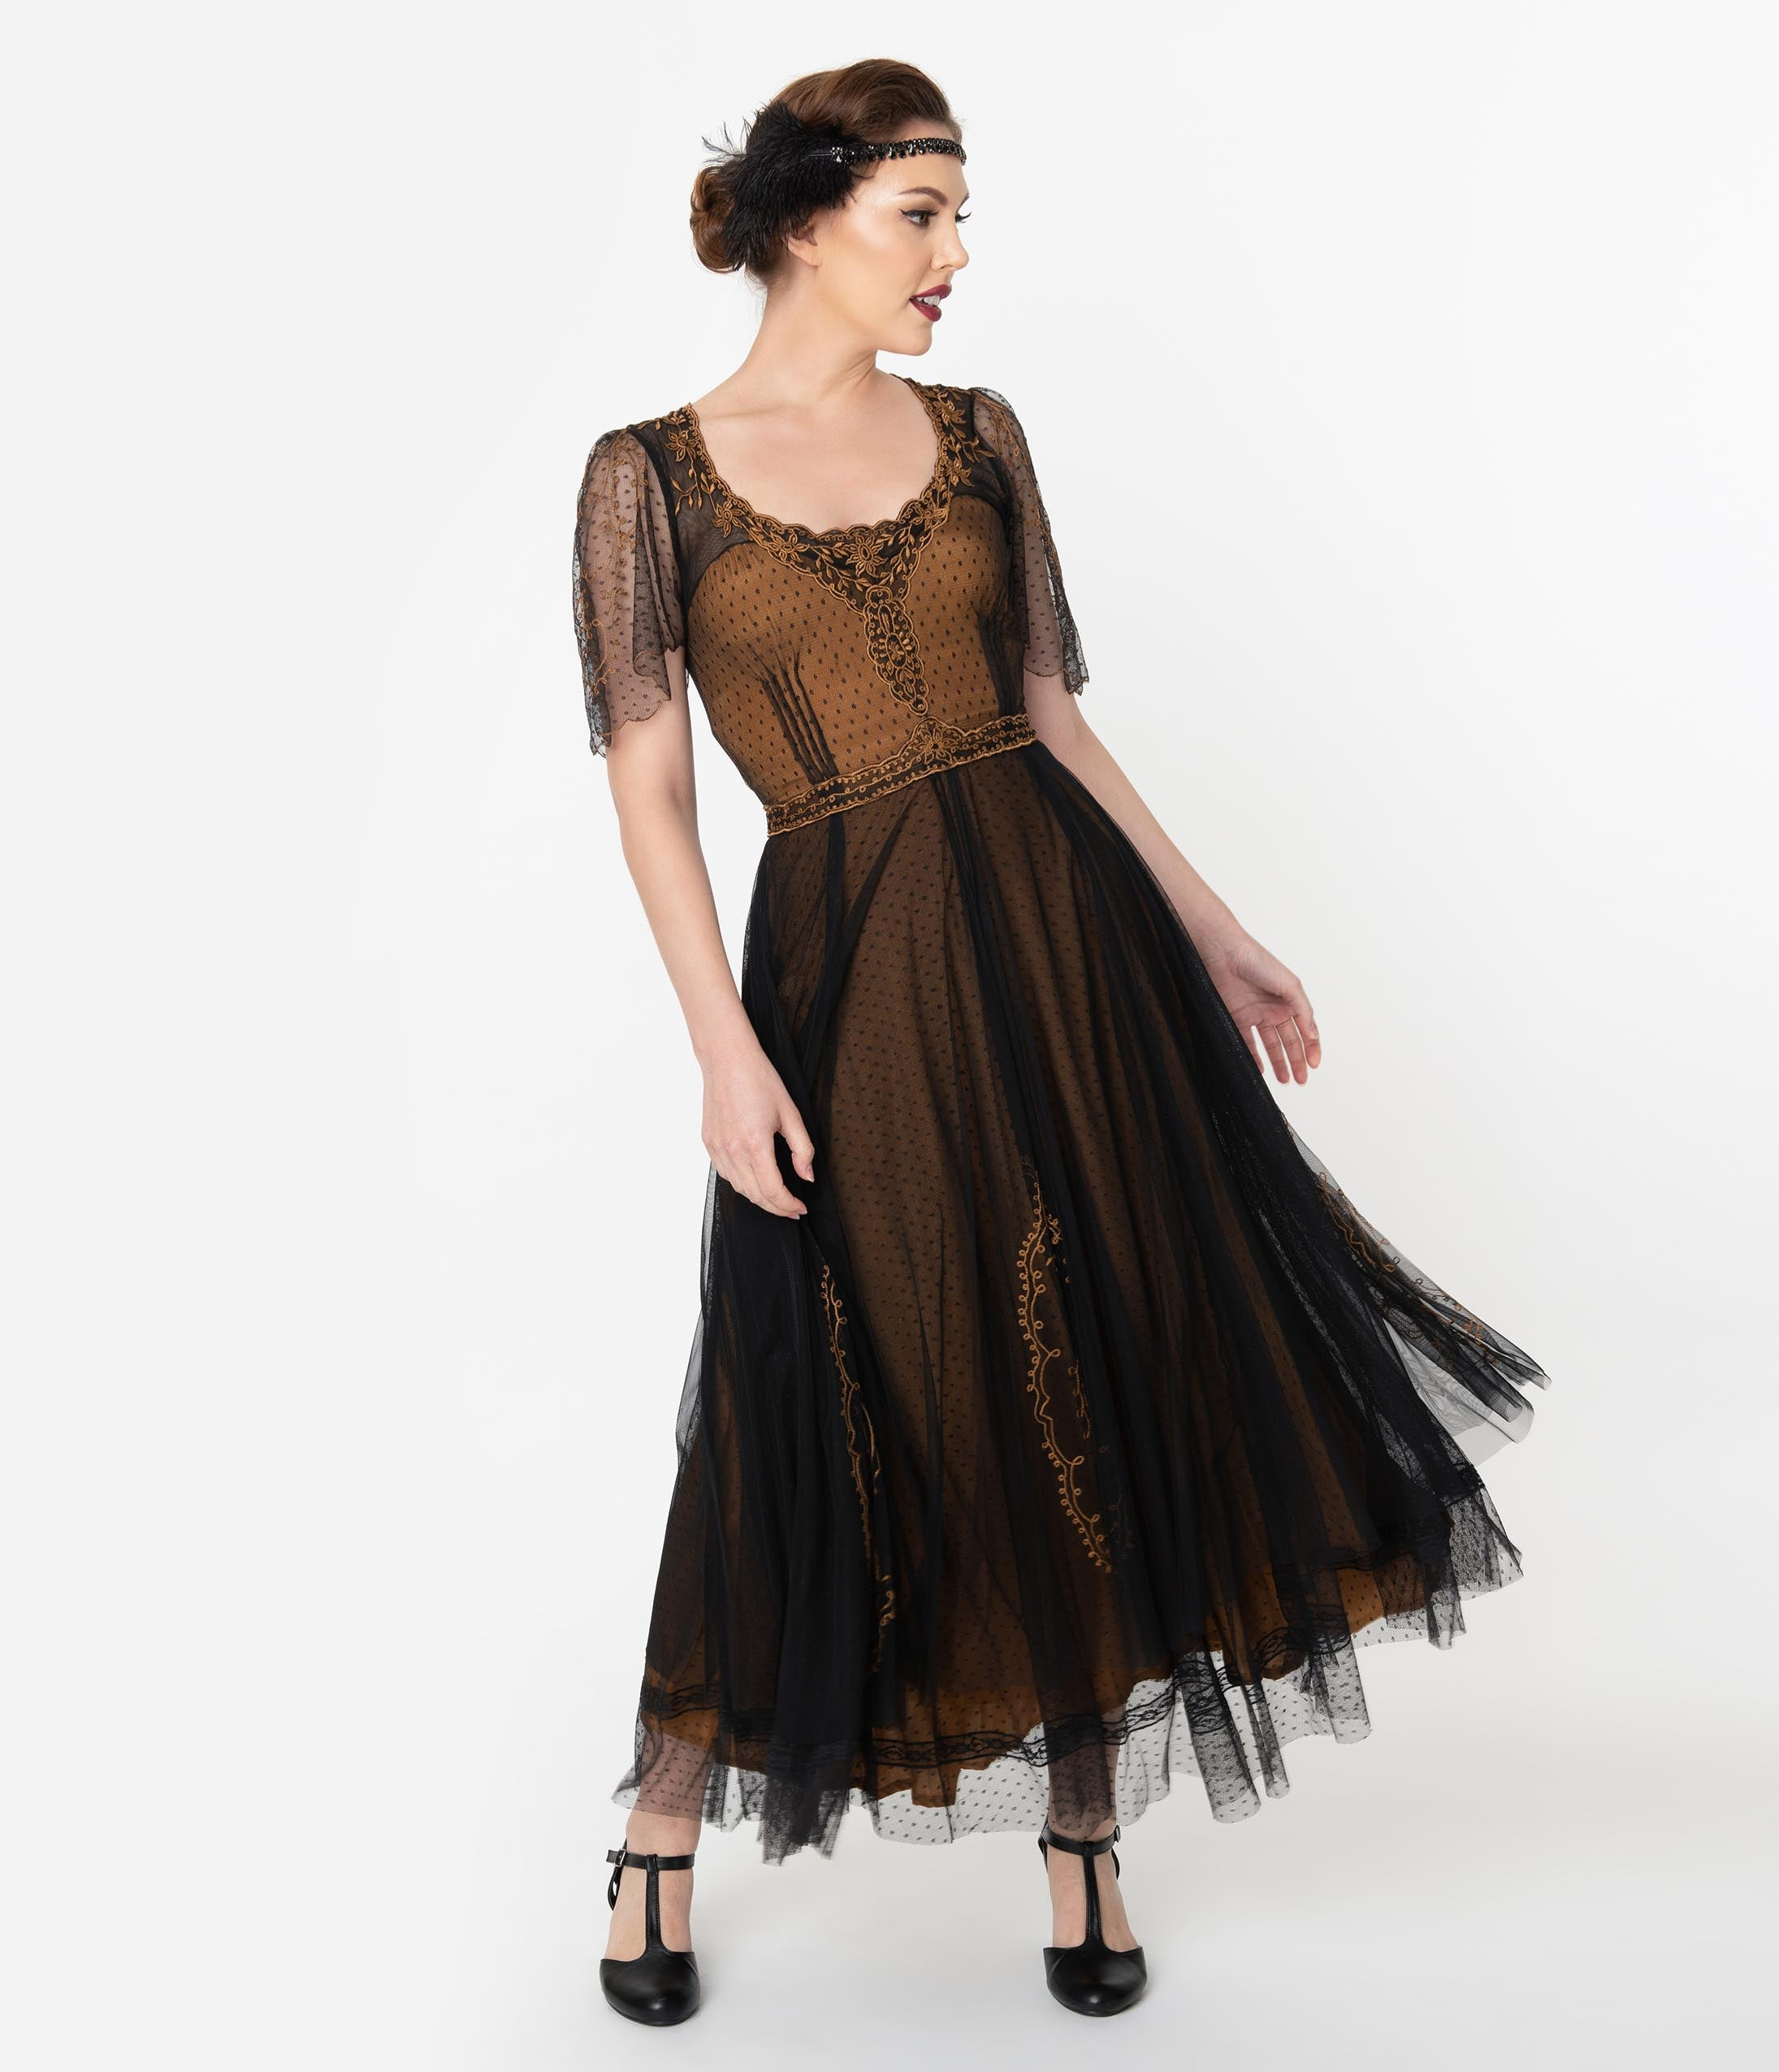 Vintage Evening Dresses and Formal Evening Gowns Vintage Style Black  Gold Embroidered Mesh Edwardian Gown $299.00 AT vintagedancer.com